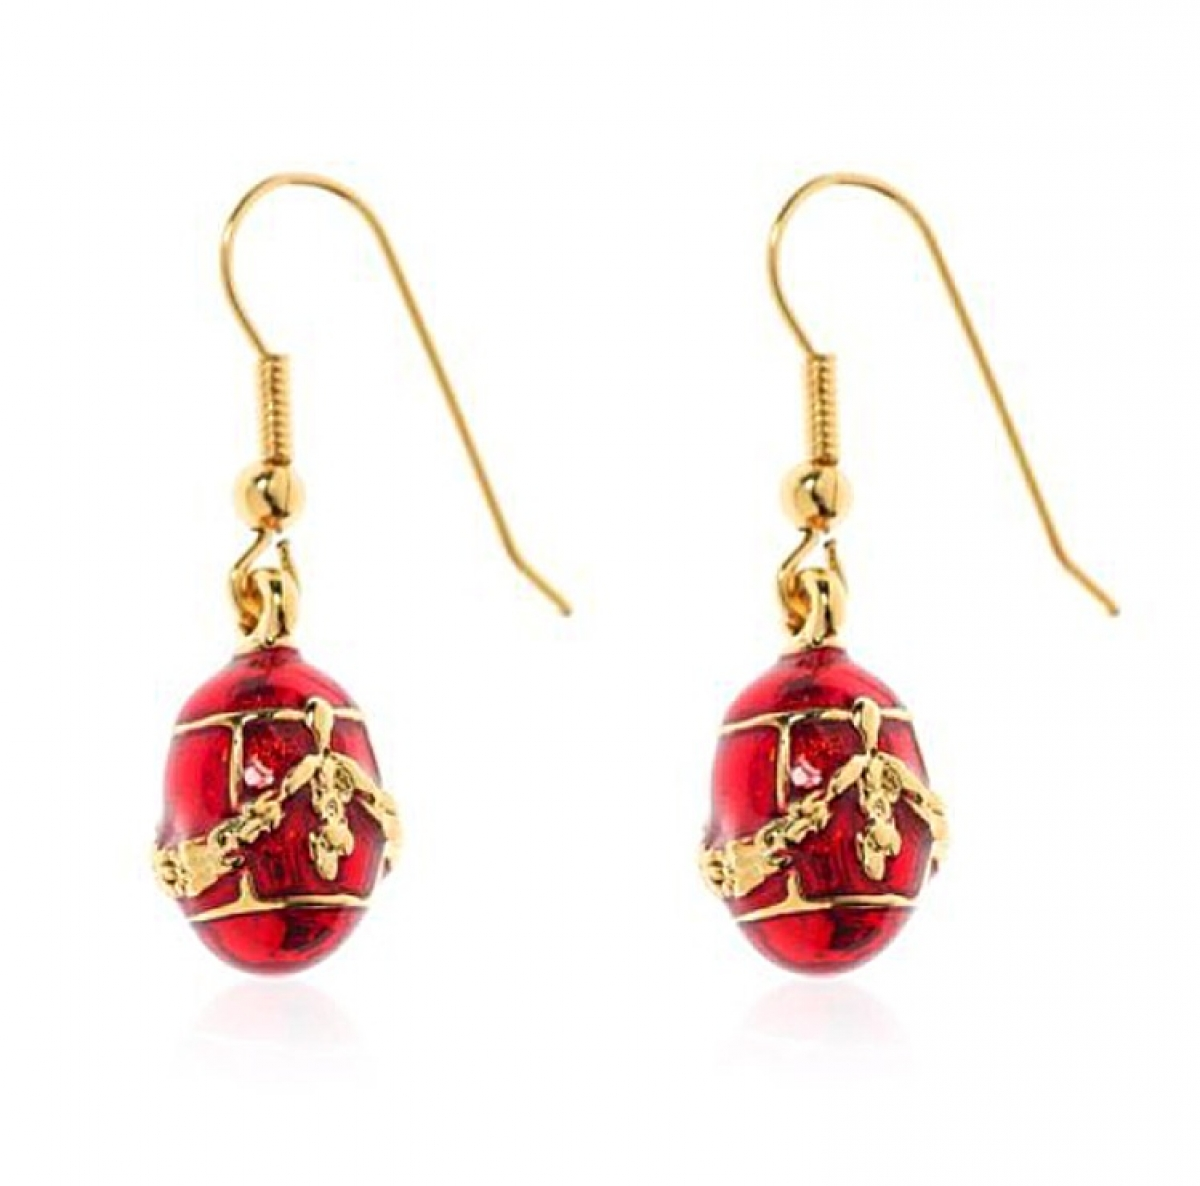 Fabergé Egg Earrings